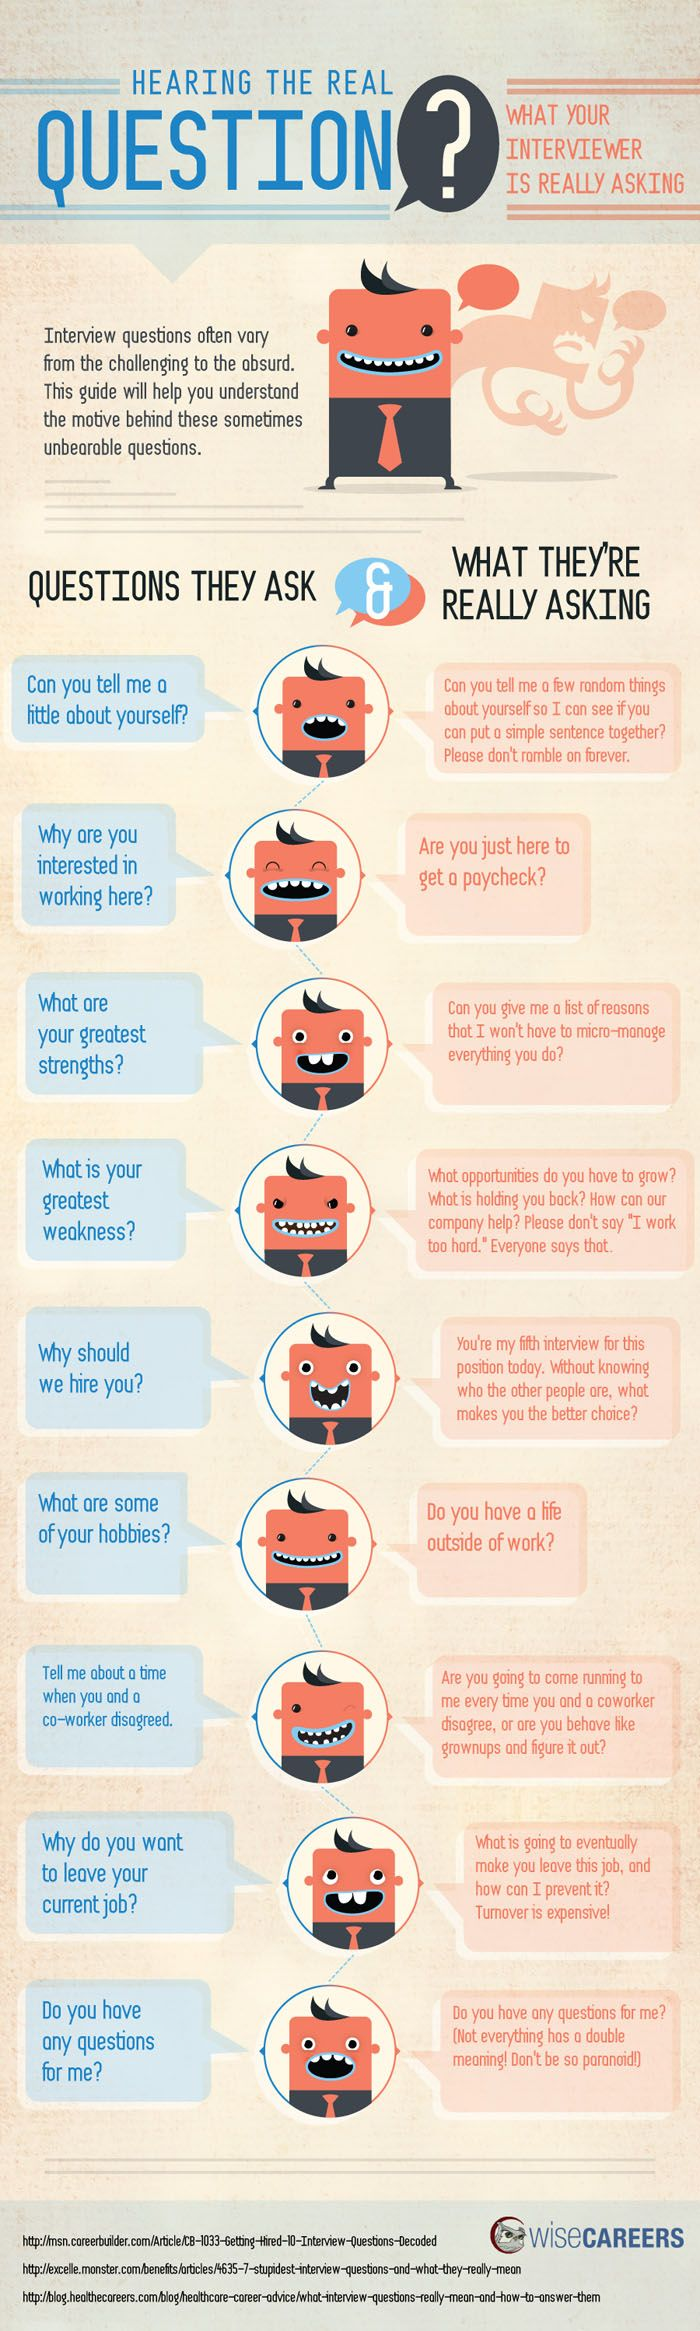 hearing the real question in your interview infographic the interviews can be tricky in the sense that what the questions the interviewer ask be different in what they really want to hear